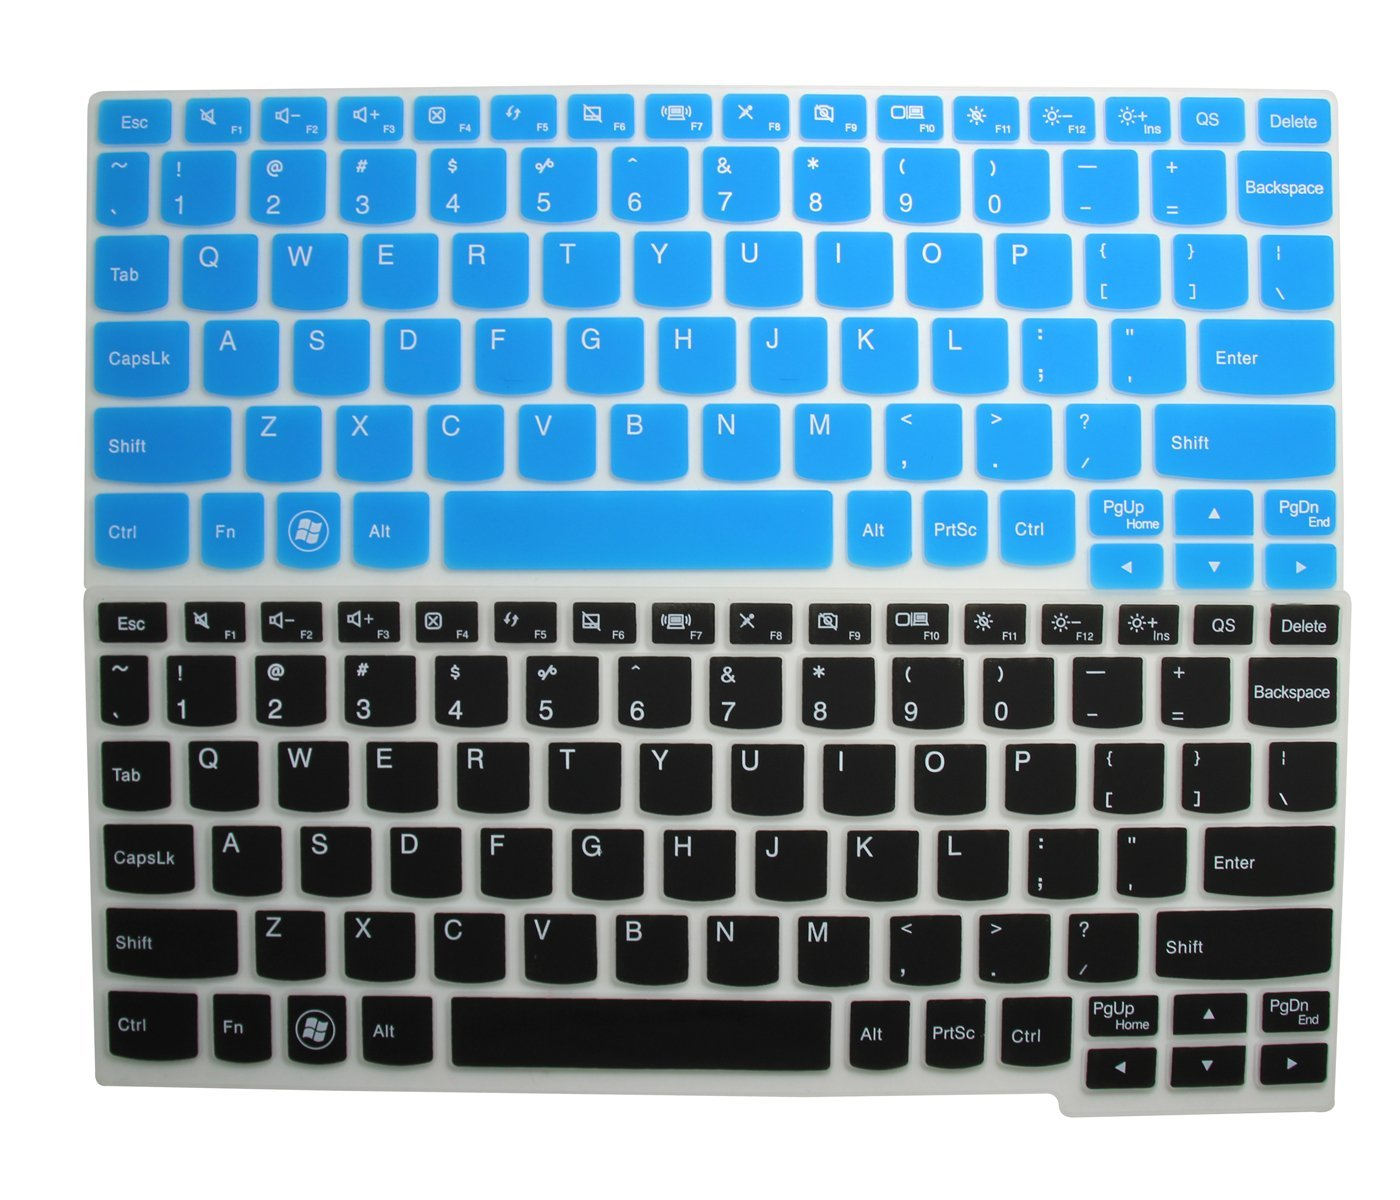 AutoLive 2-Pack Keyboard Protector Skin Cover for Lenovo IdeaPad S206 S210 S210T / Yoga 11 11s / Yoga 2 11.6